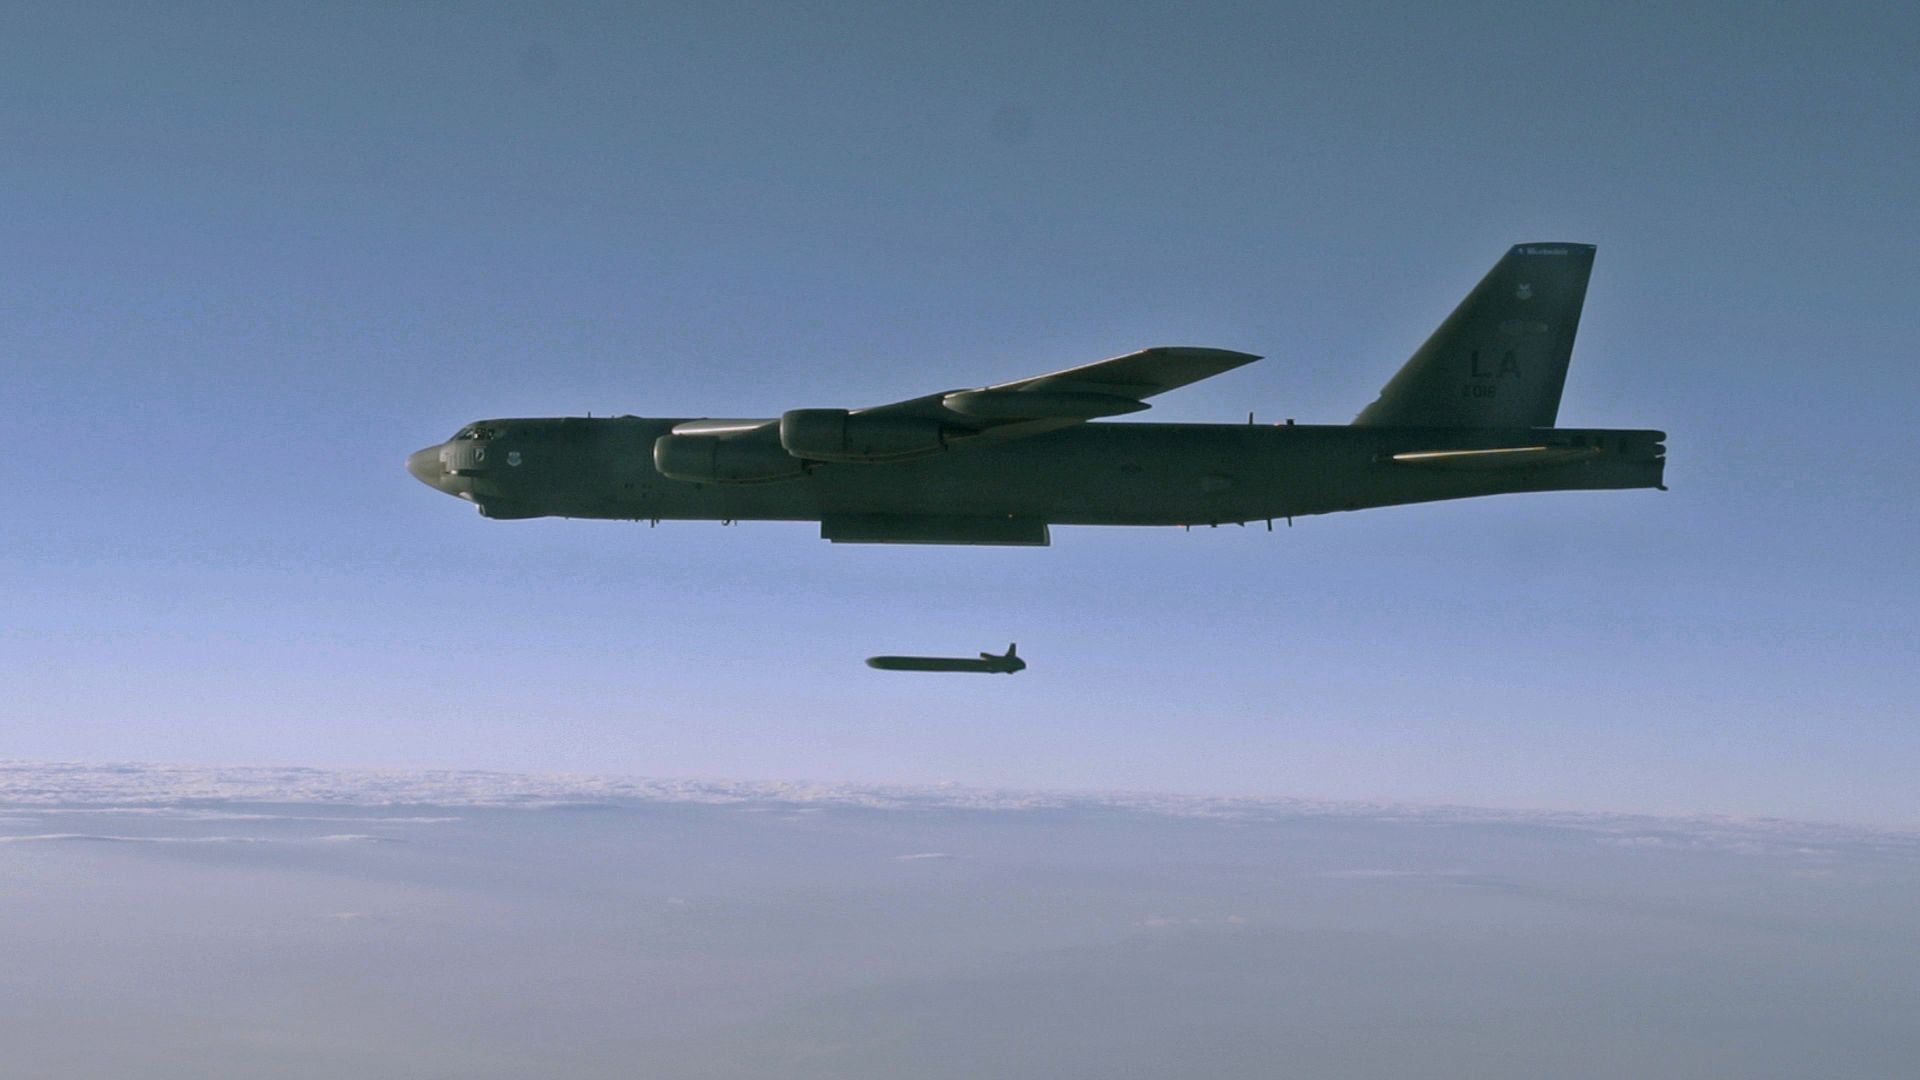 An unarmed AGM-86B Air-Launched Cruise Missile is released from a B-52H Stratofortress Sept. 22, 2014, over the Utah Test and Training Range during a Nuclear Weapons System Evaluation Program sortie.